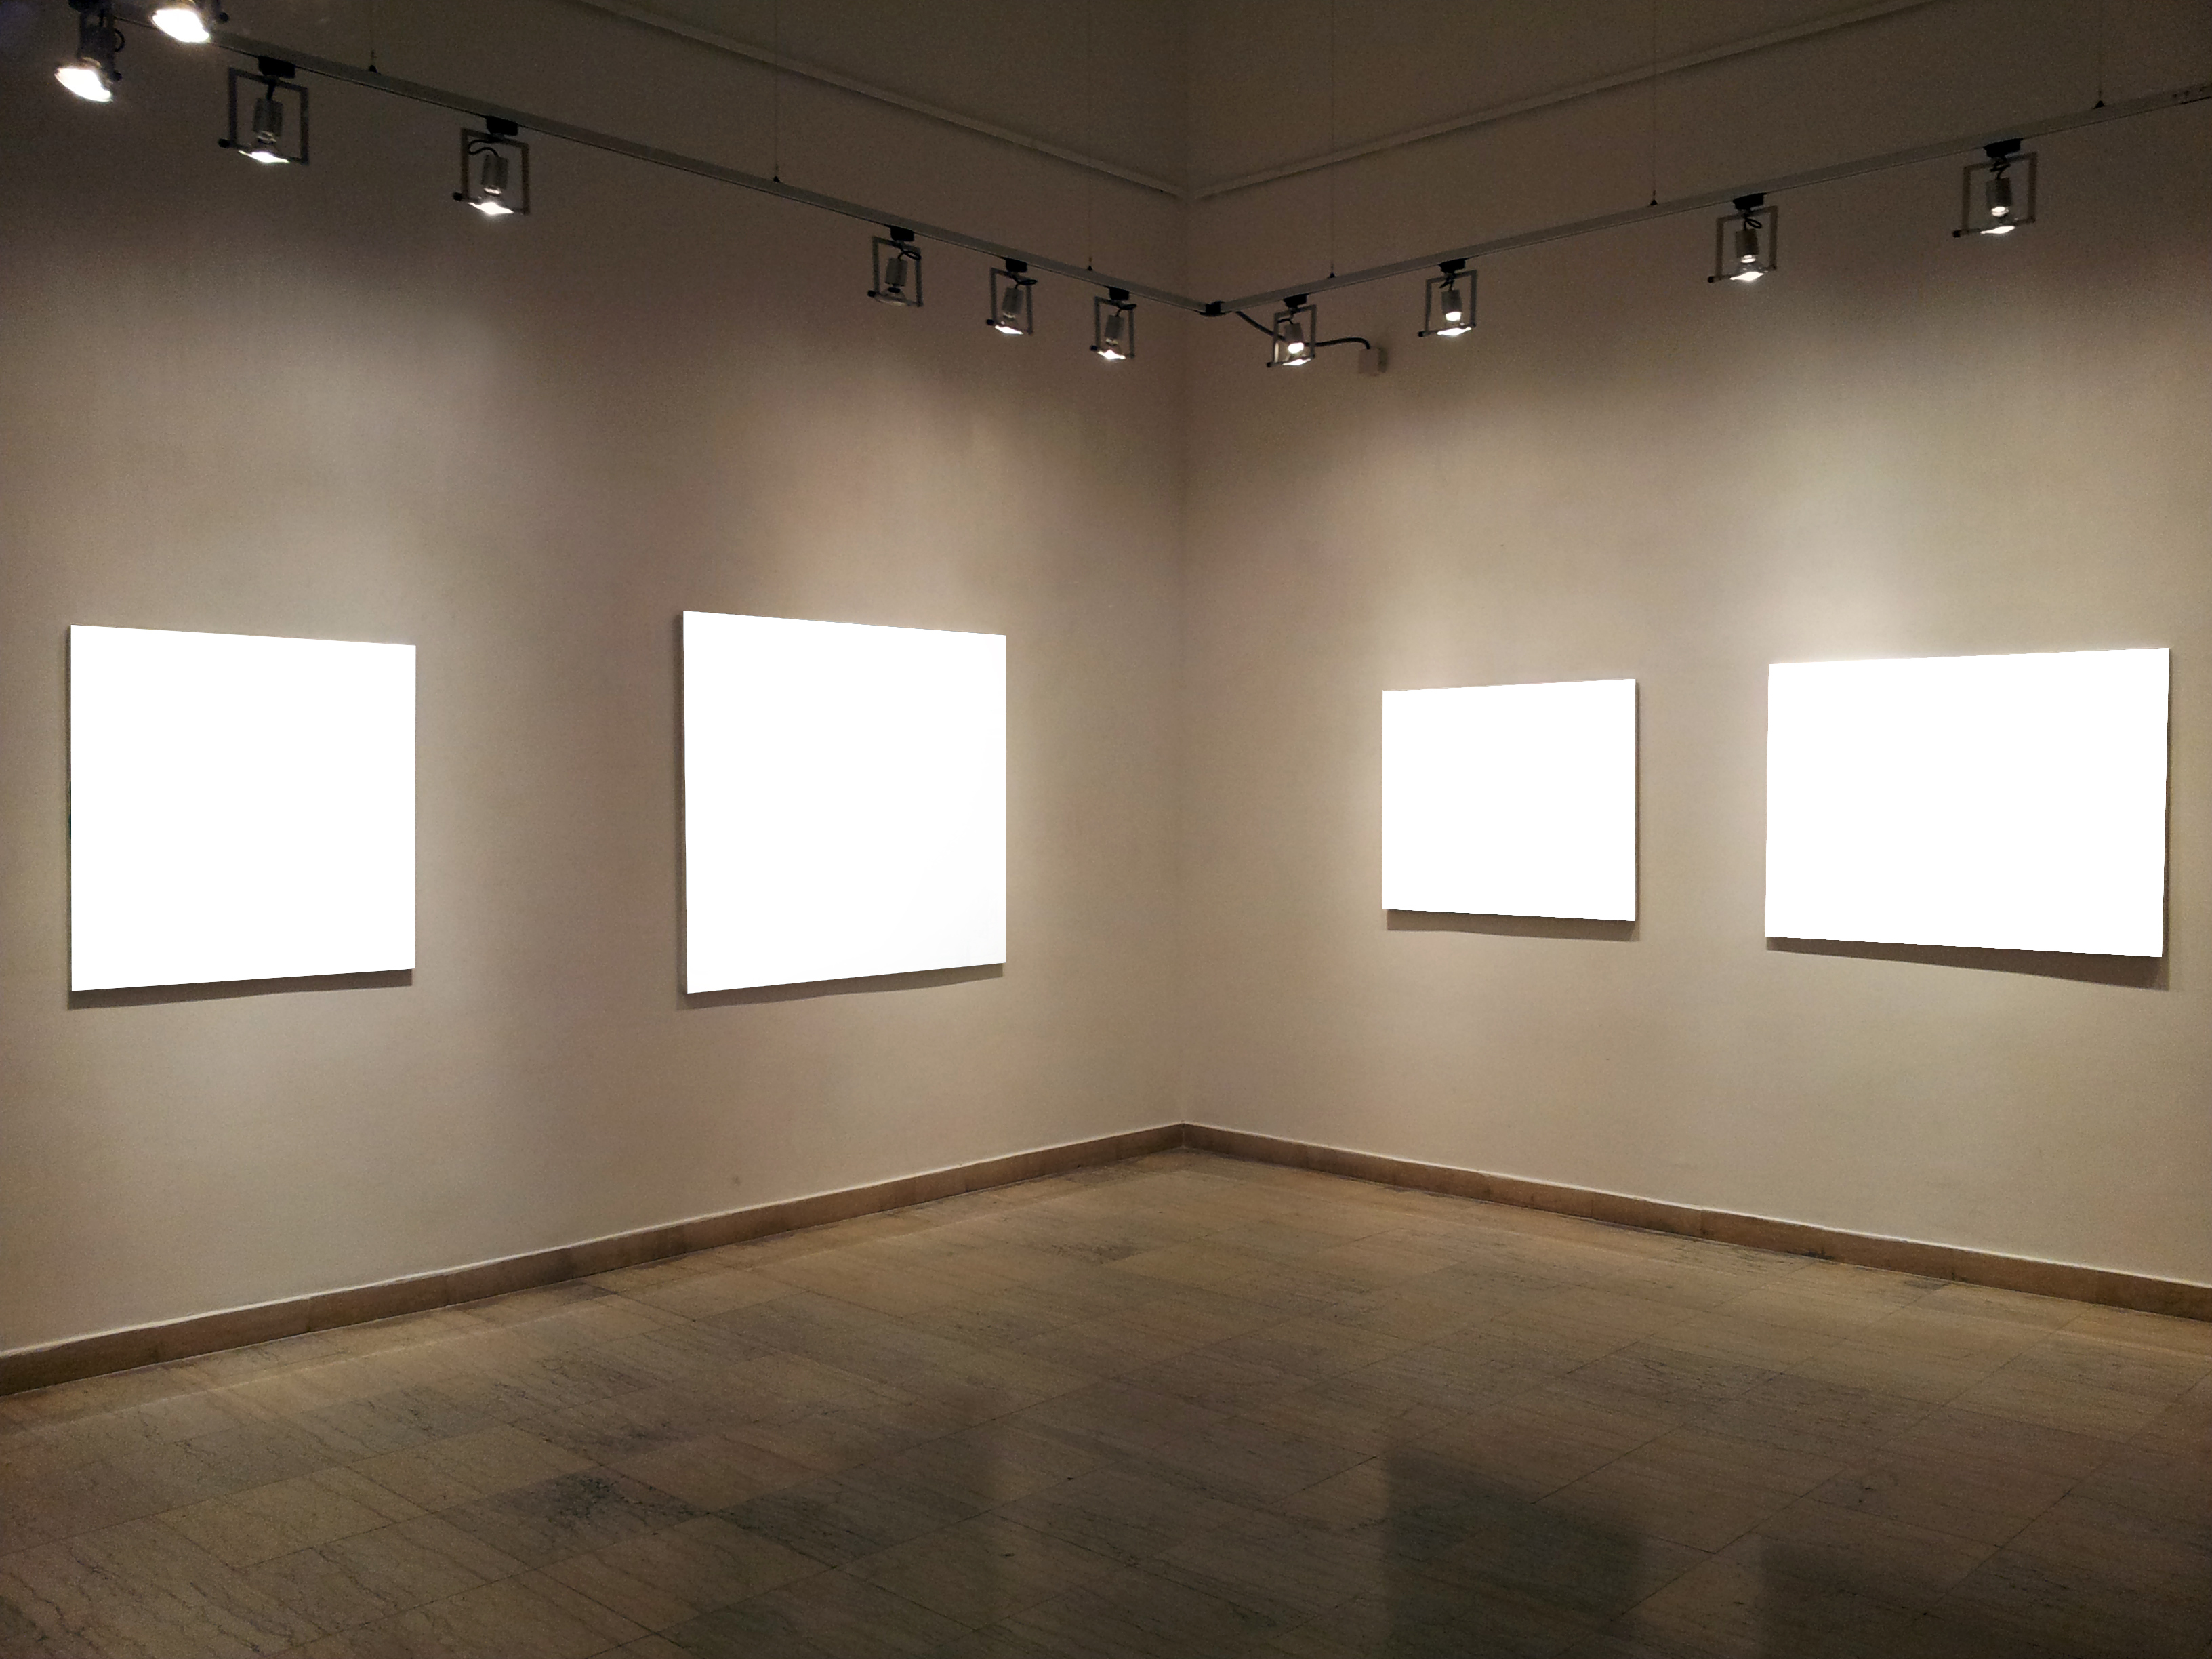 Led Lighting For Art Gallery Lications What You Need To